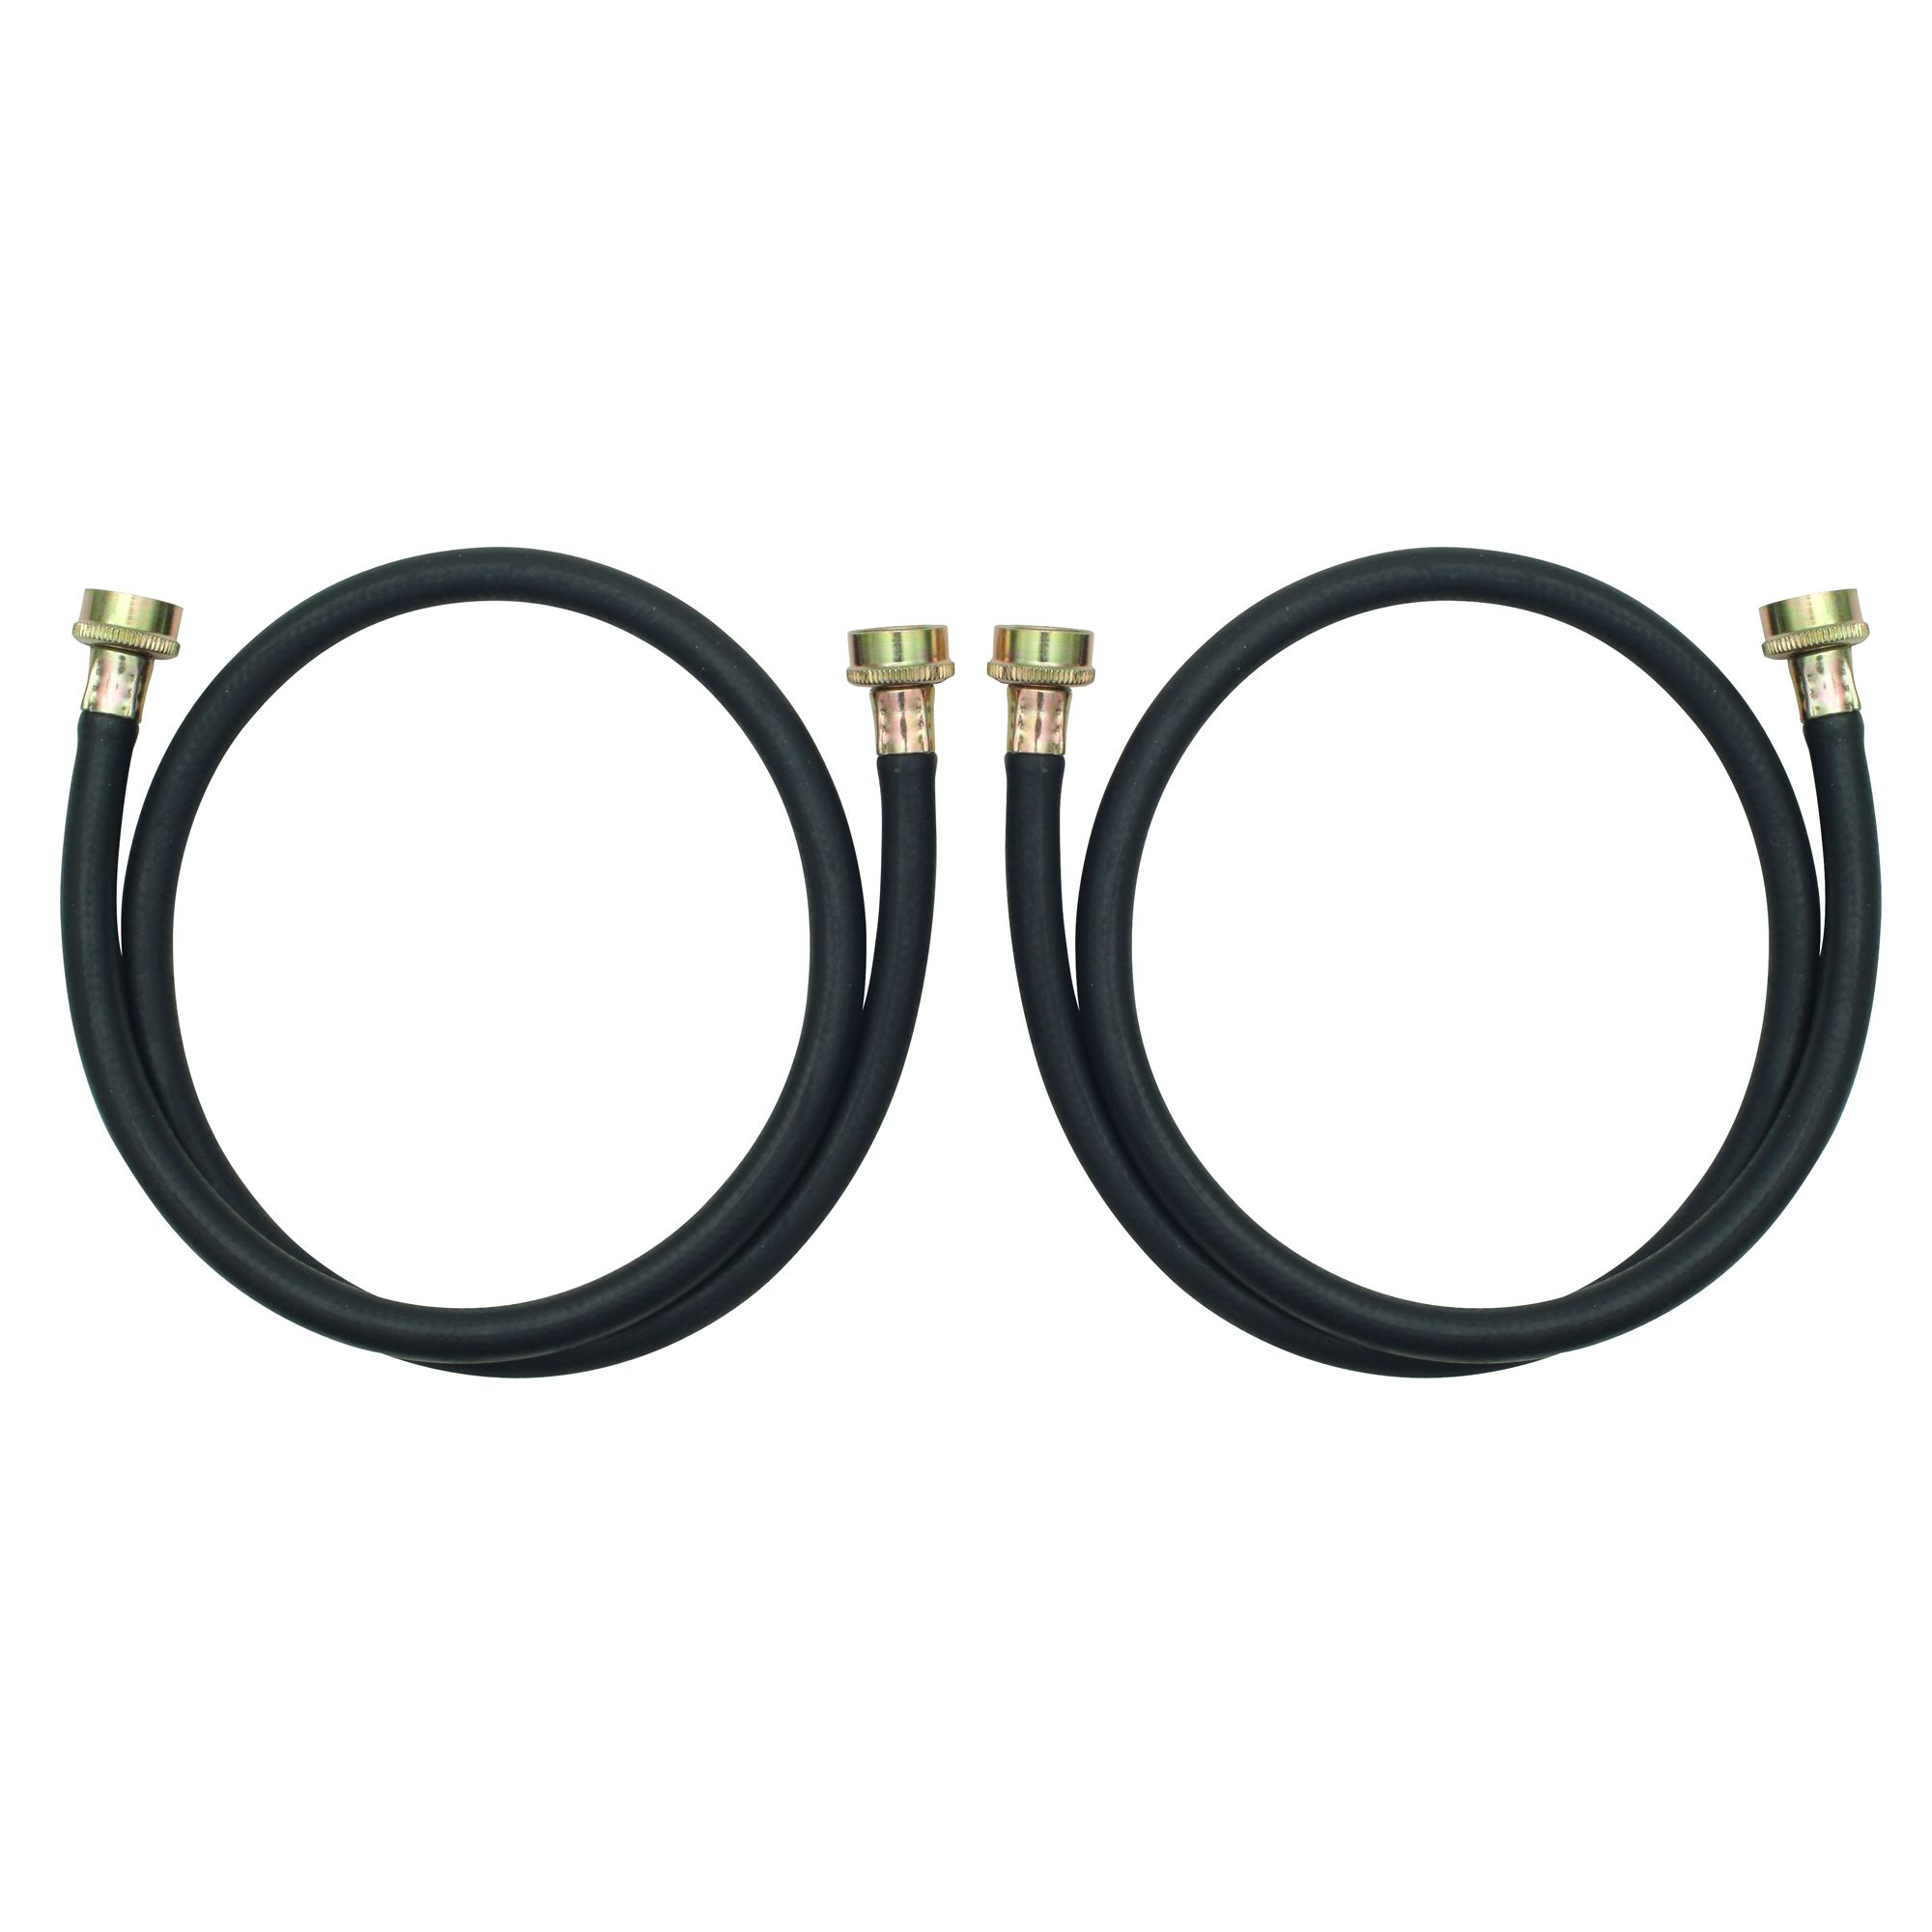 Whirlpool 8212546RP 4' Residential Washer Hoses - 2 Pack